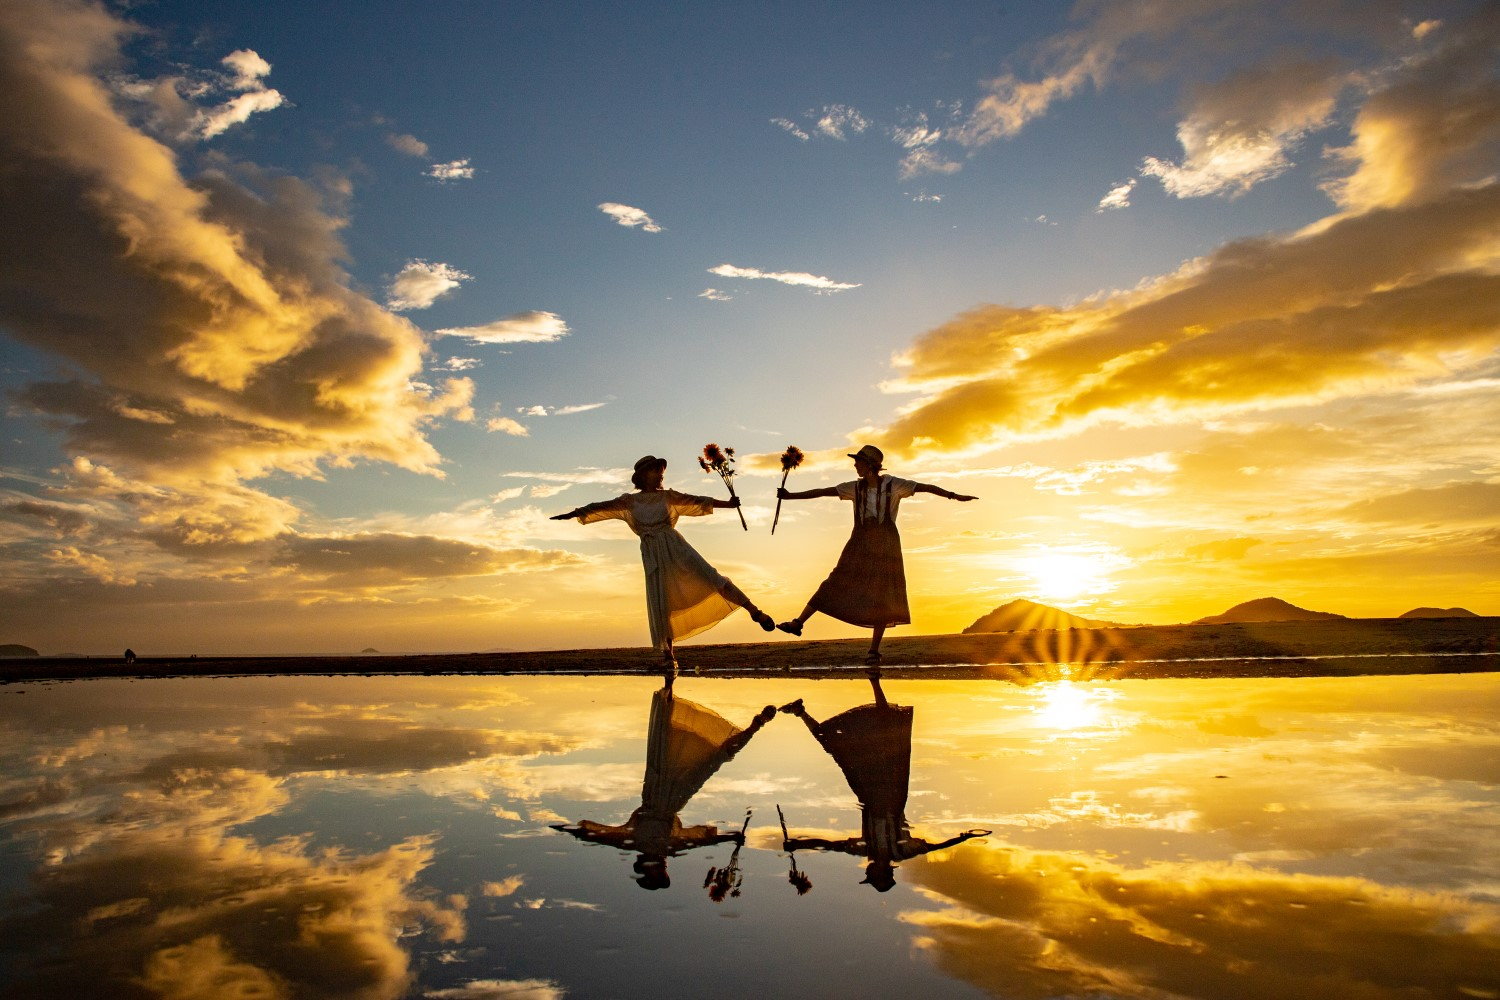 Two women standing on the beach reflected in the water below with the setting sun behind them. They are holding sunflowers and standing on one leg with the other extended, mirroring each other's pose.